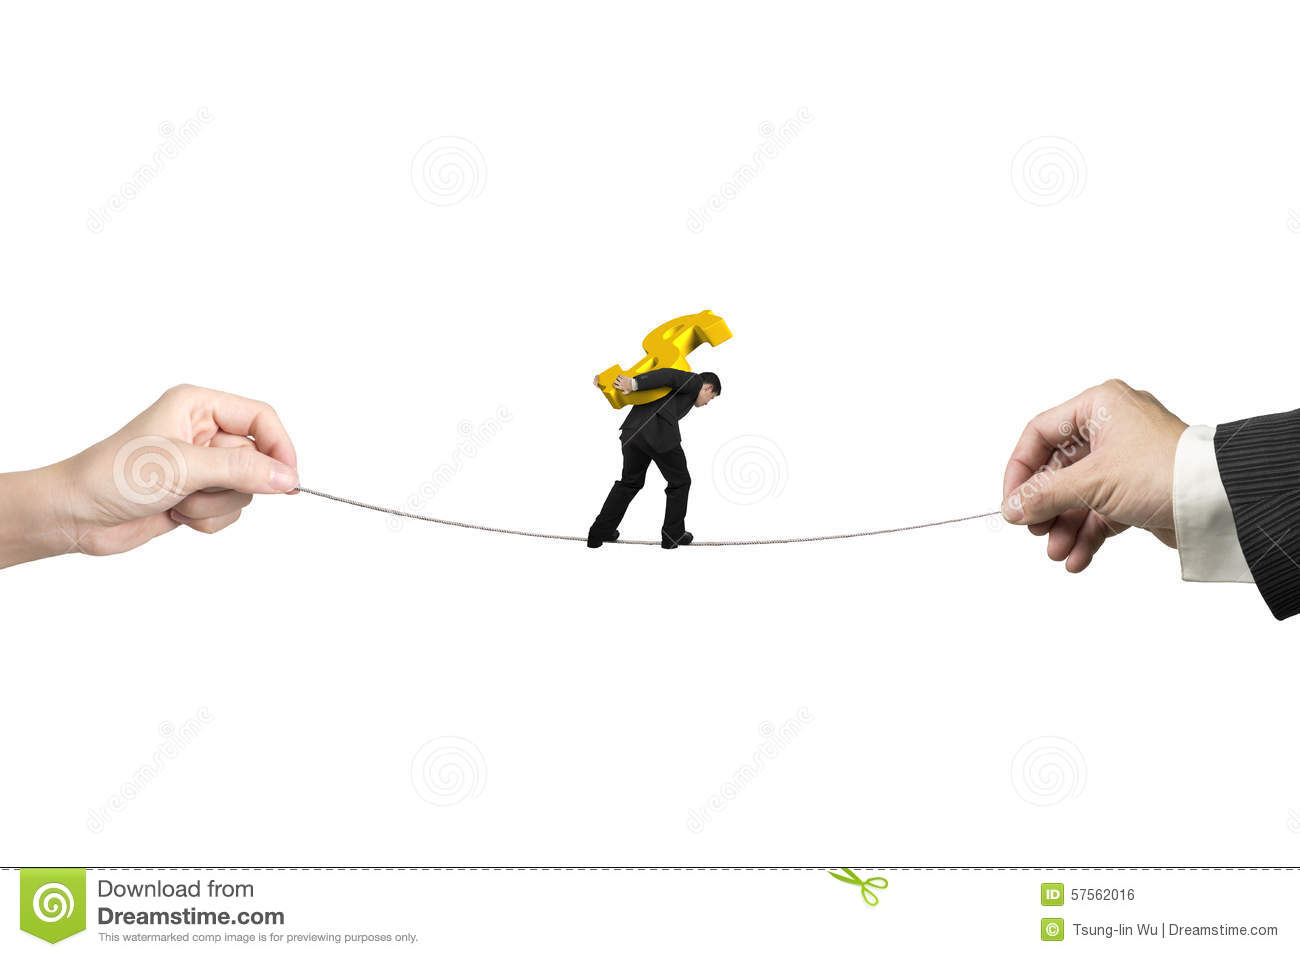 Businessman carrying dollar sign balancing tightrope with hands